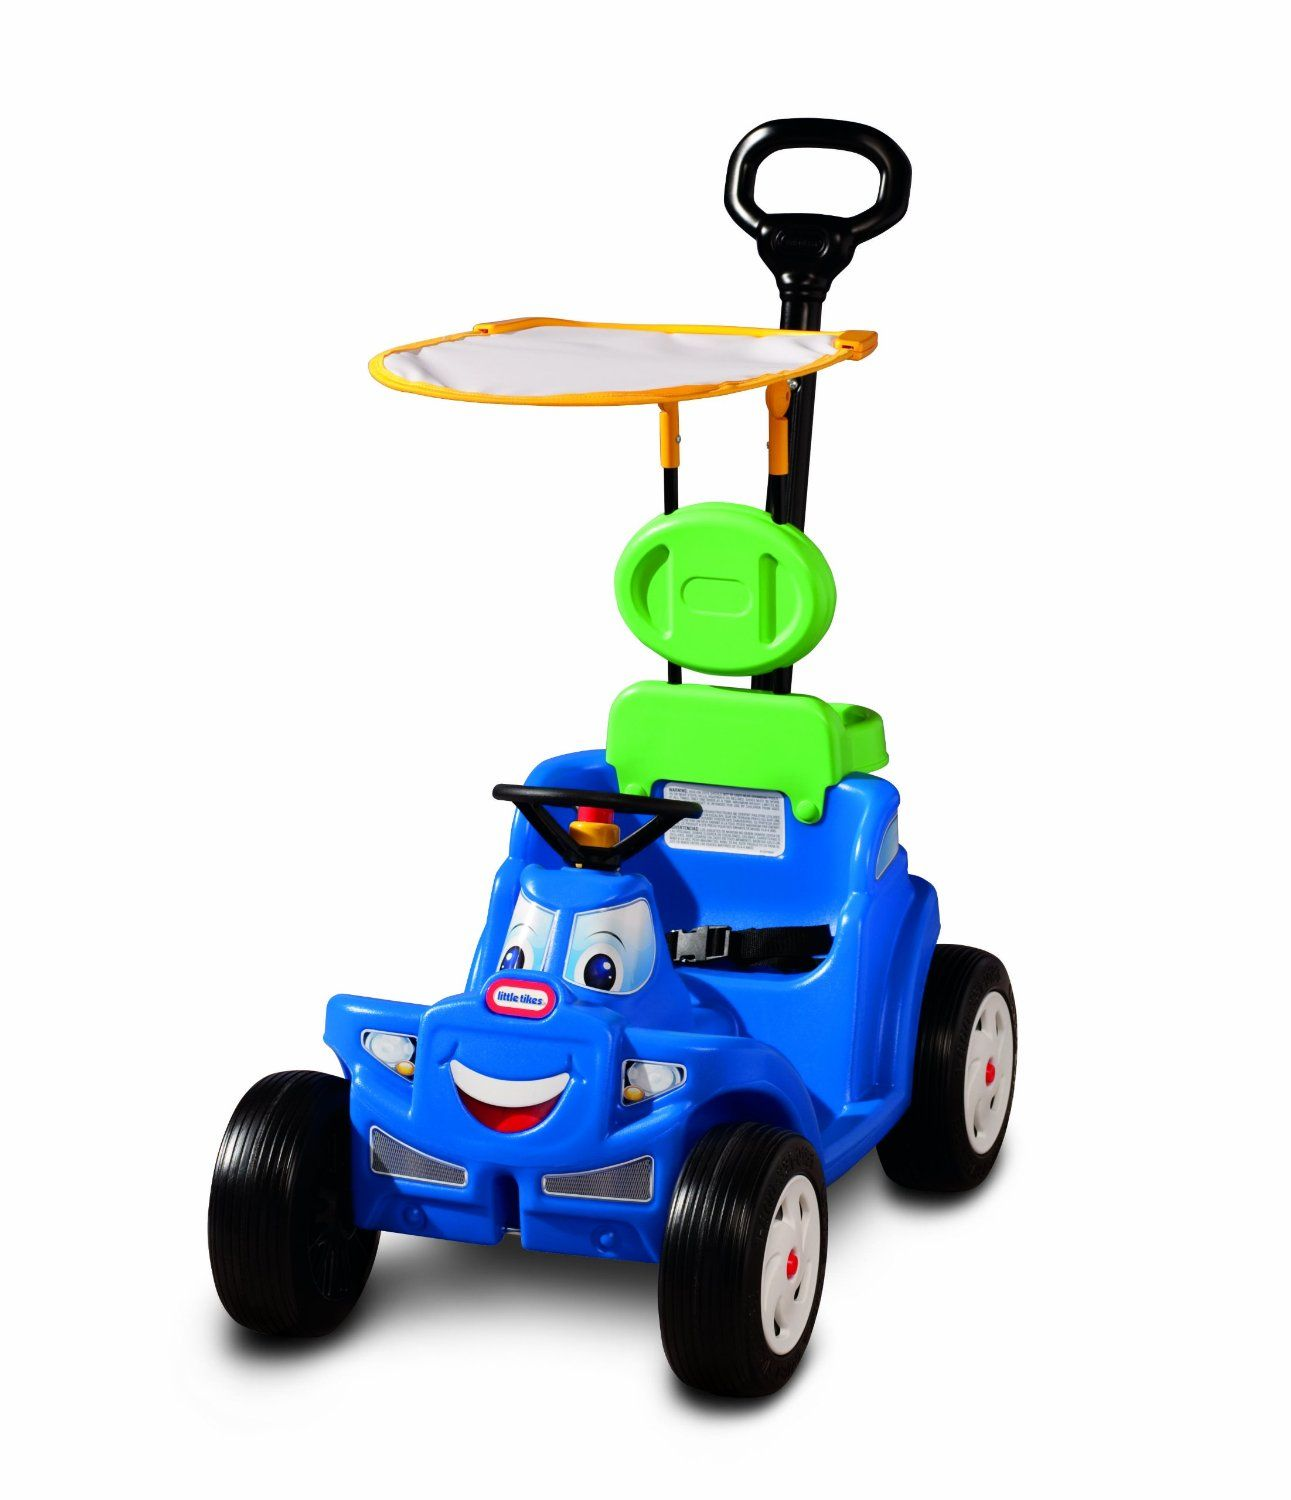 Amazon Little Tikes Deluxe 2 in 1 Cozy Roadster Toys & Games